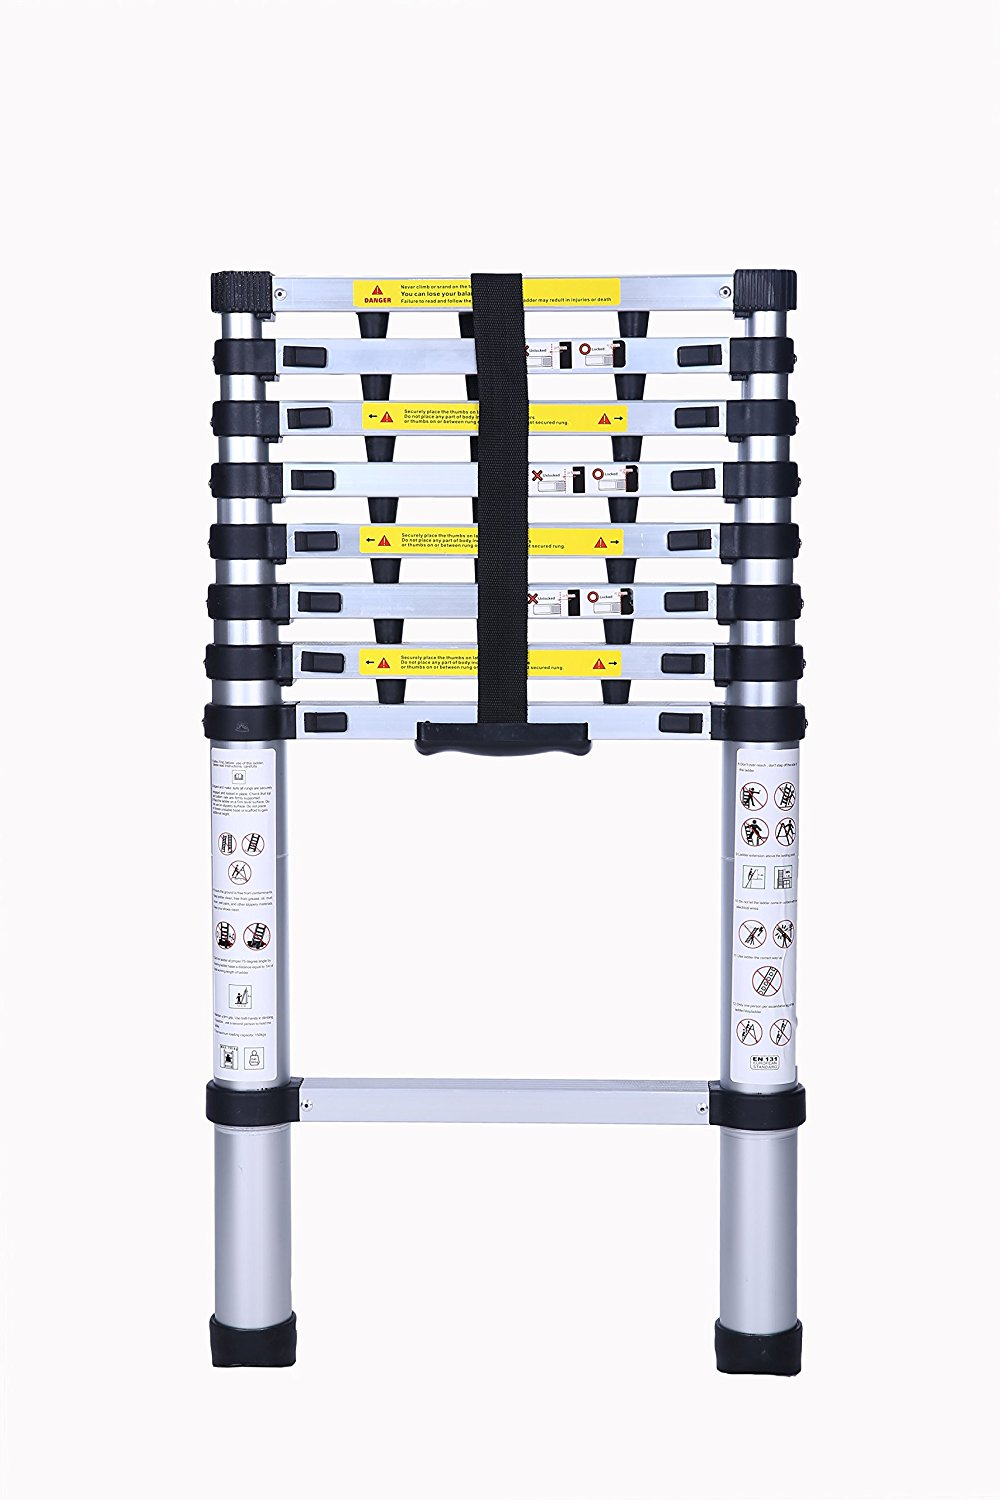 En131 telescopic ladder car and van mats